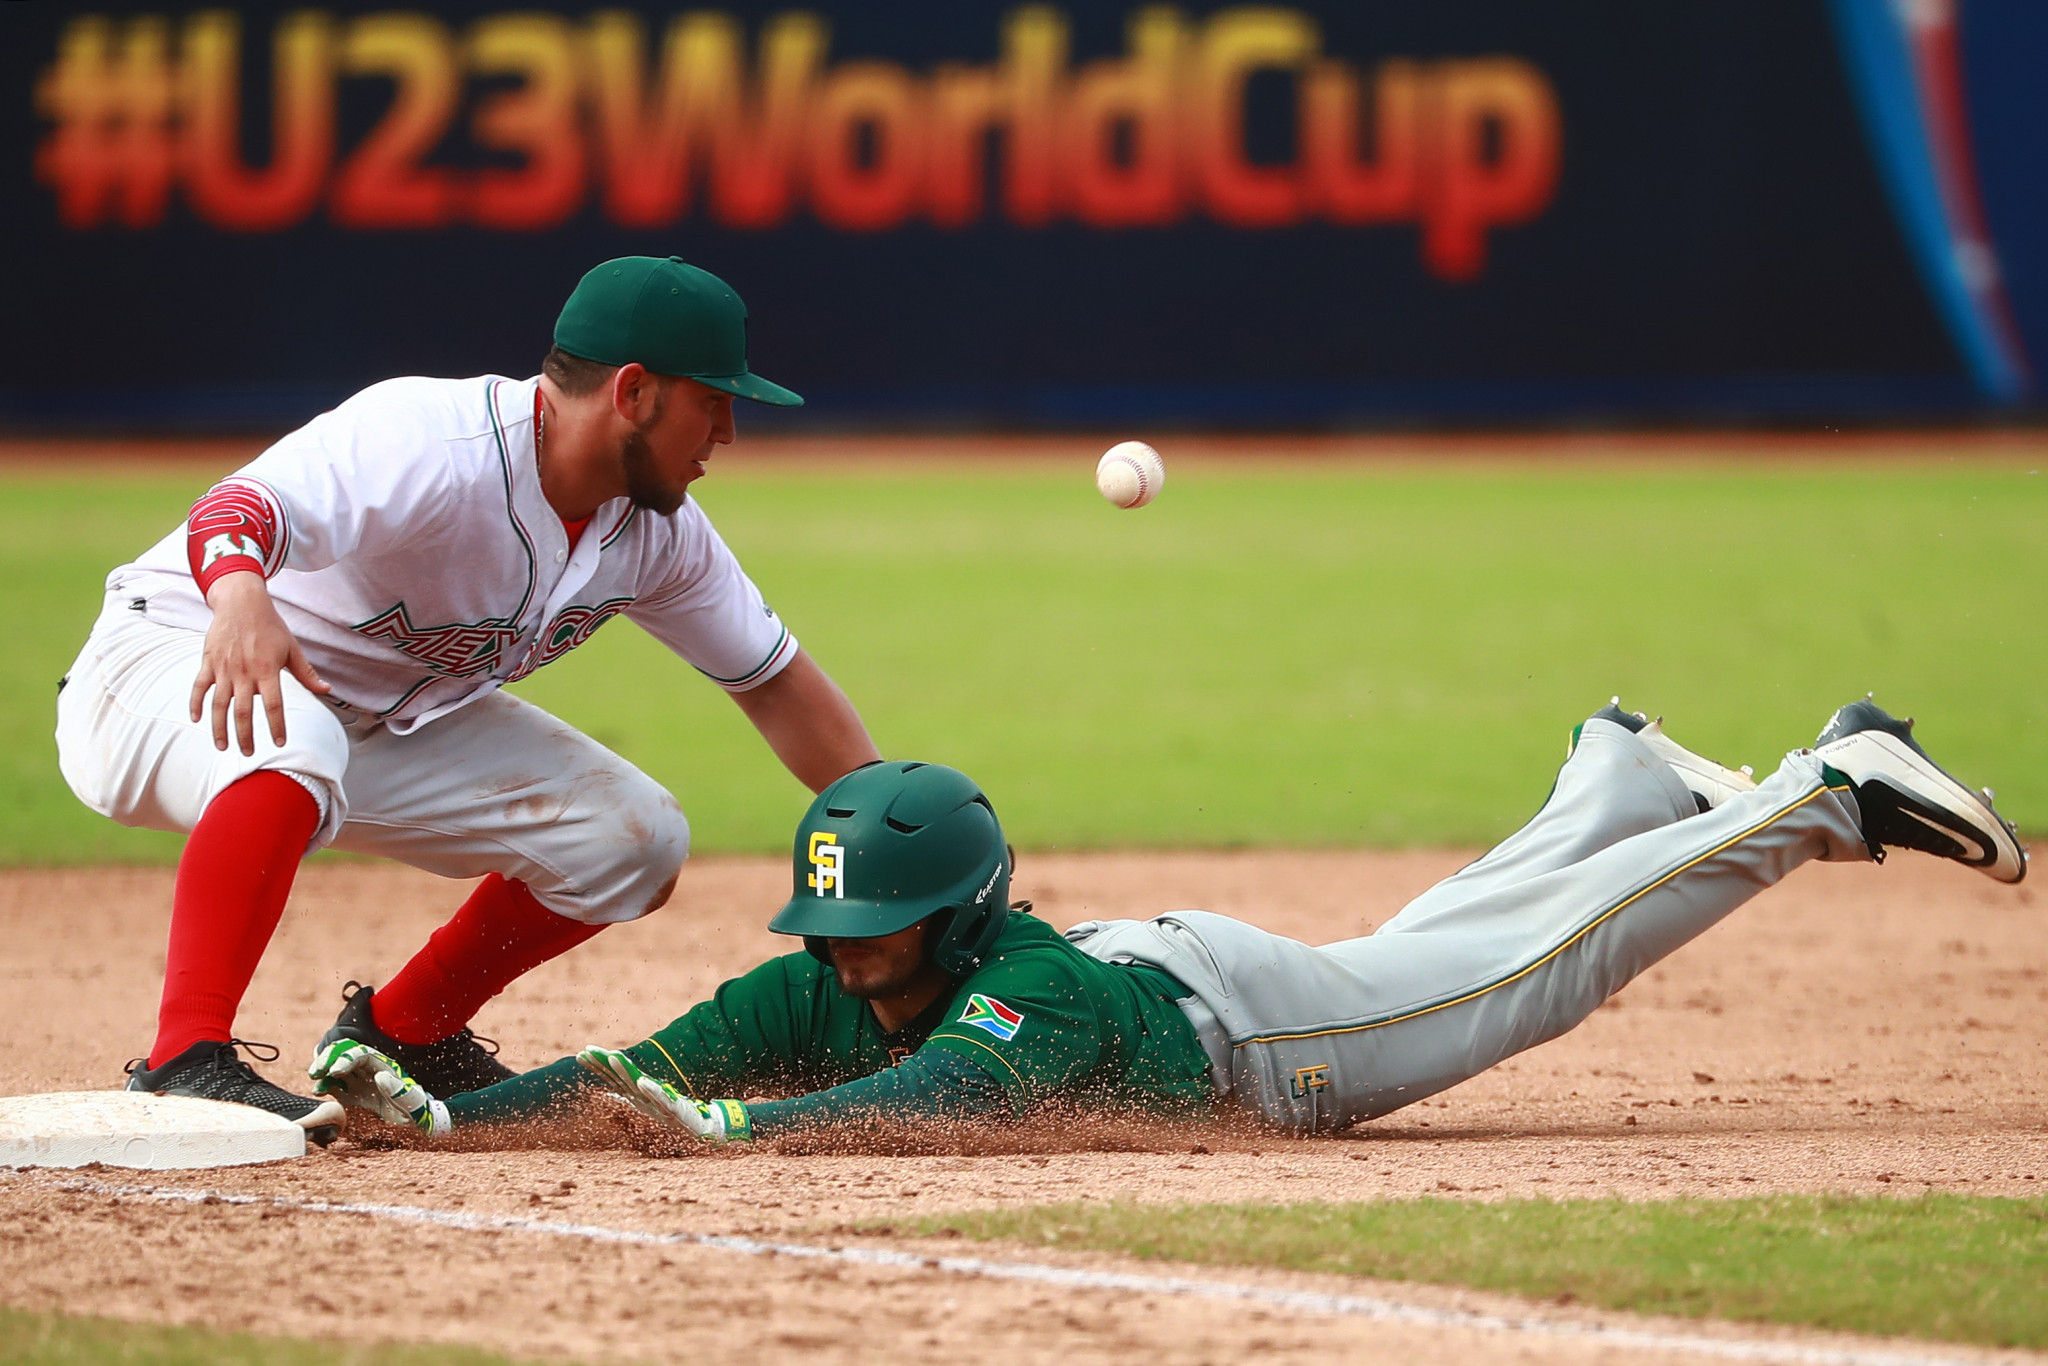 Barranquilla has held many baseball and softball events, including the Under-23 Baseball World Cup in 2018 ©Getty Images